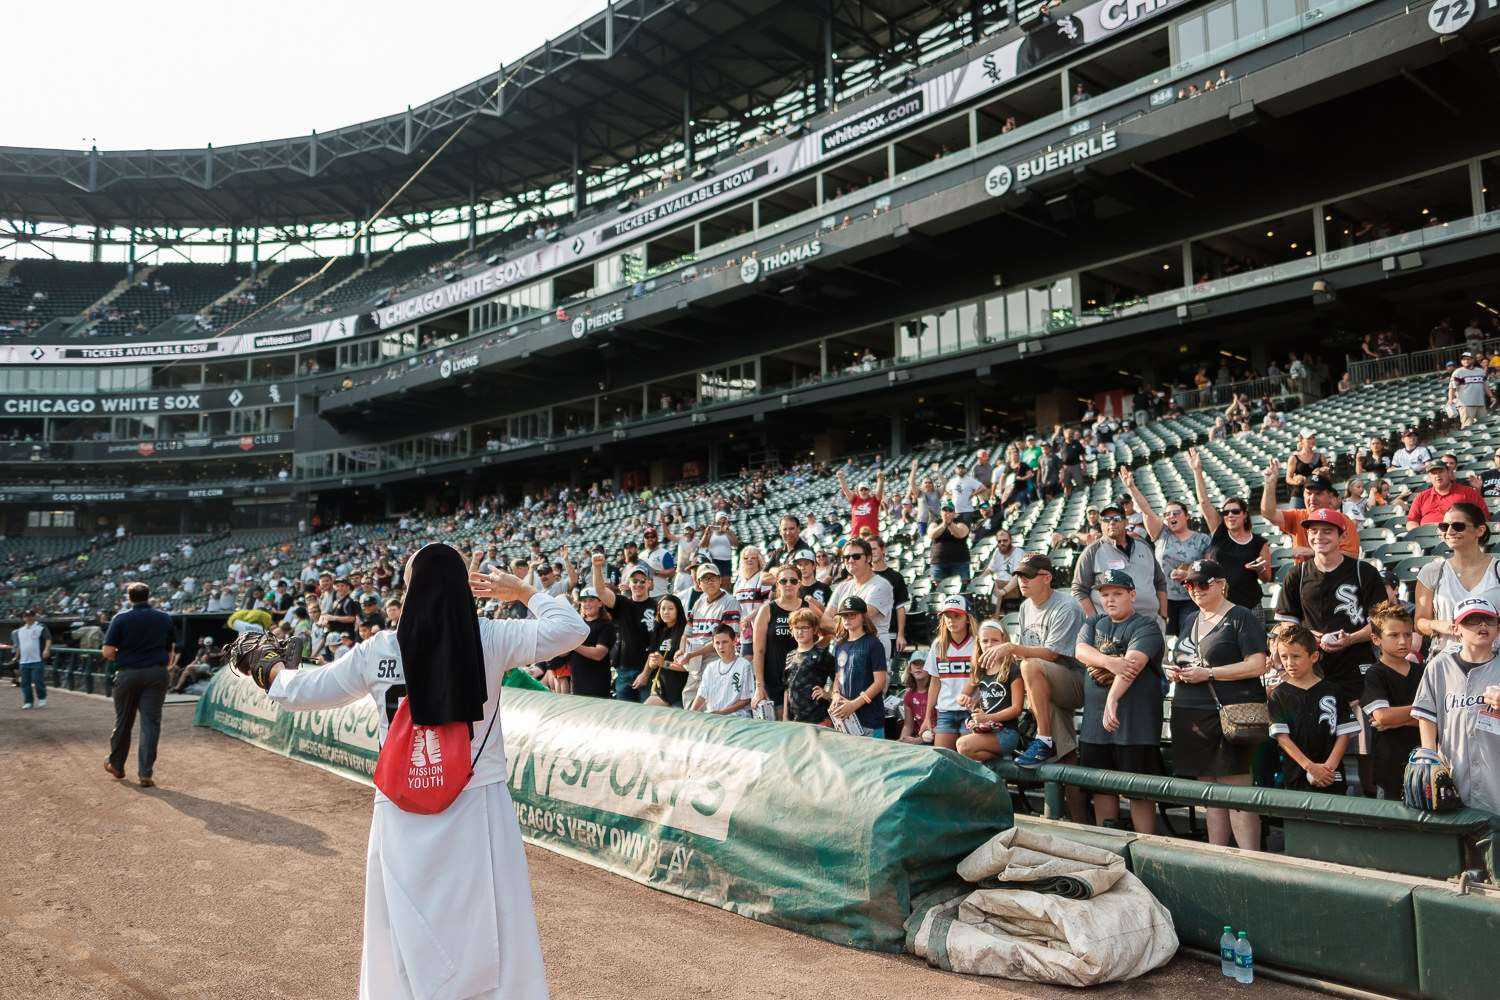 Sister Mary Jo Sobieck, Marian Catholic High School, threw, first pitch, White Sox, Kansas City Royals, Guaranteed Rate Field, comiskey park, nun, sister mary jo, chicago, photographer, photography, sports, perfect pitch, melissa ferrara, iron and honey,